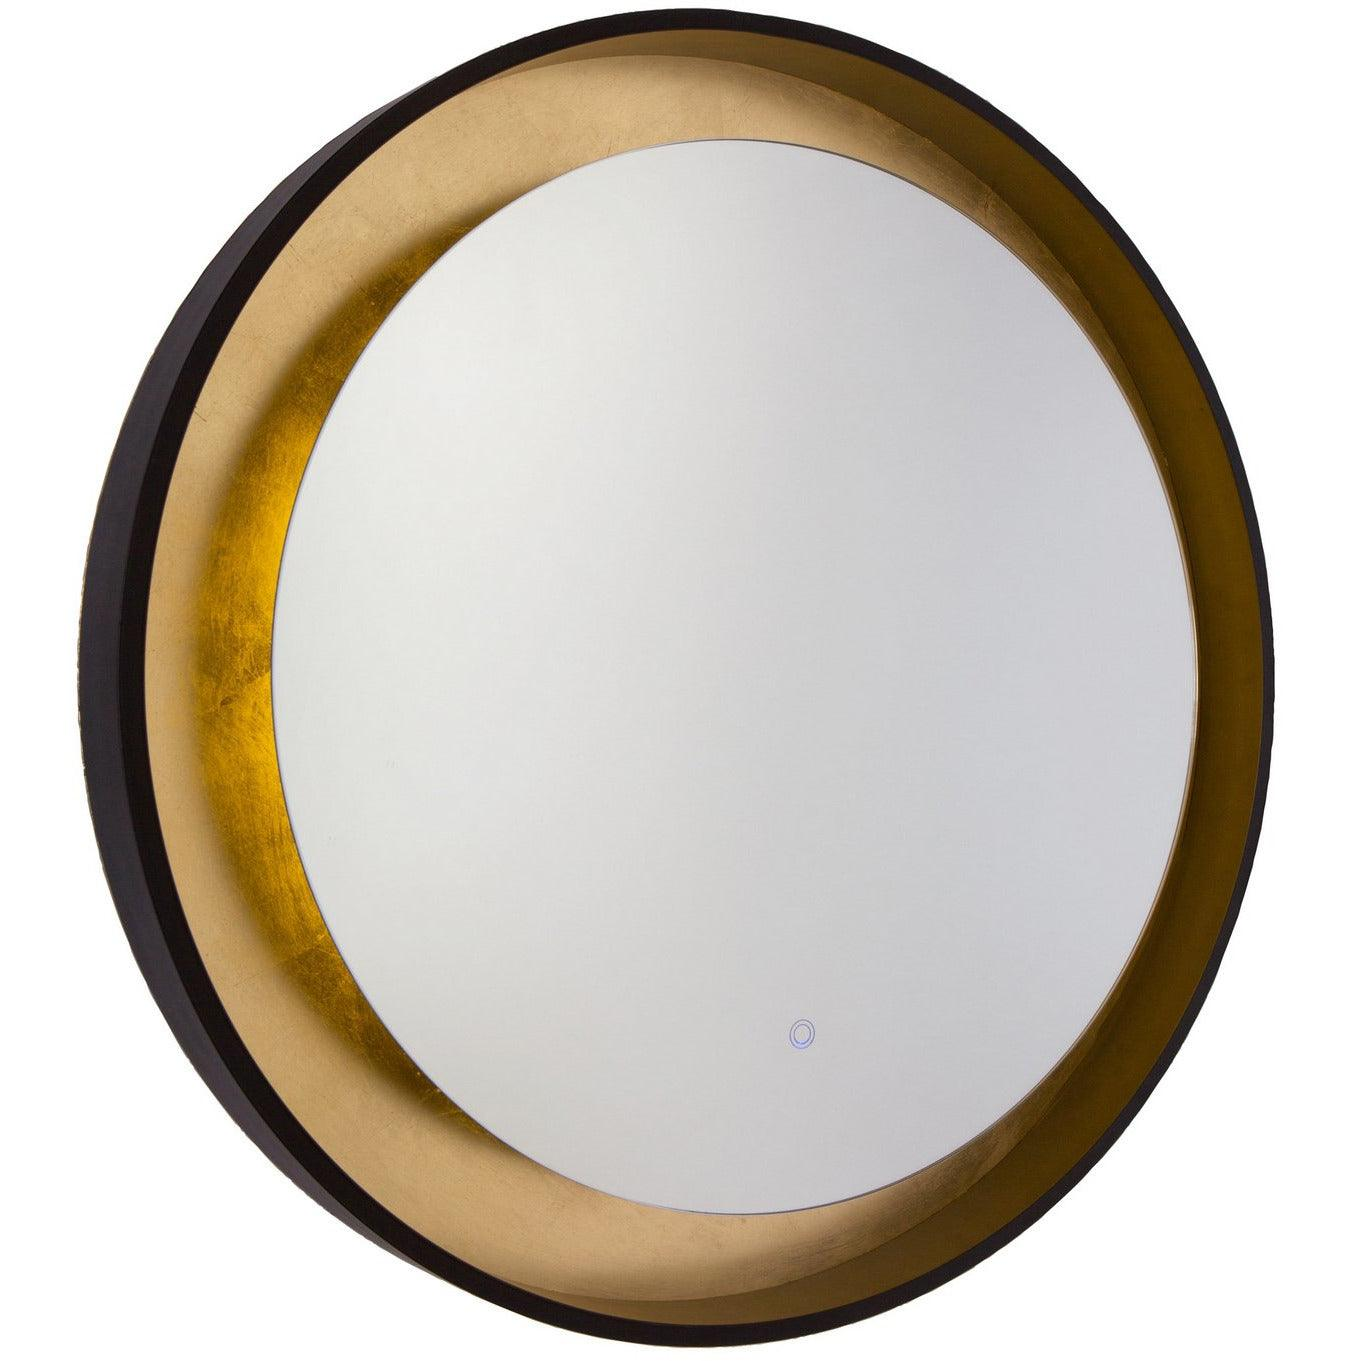 Artcraft Lighting - AM304 - LED Mirror - Reflections - Metal & Glass